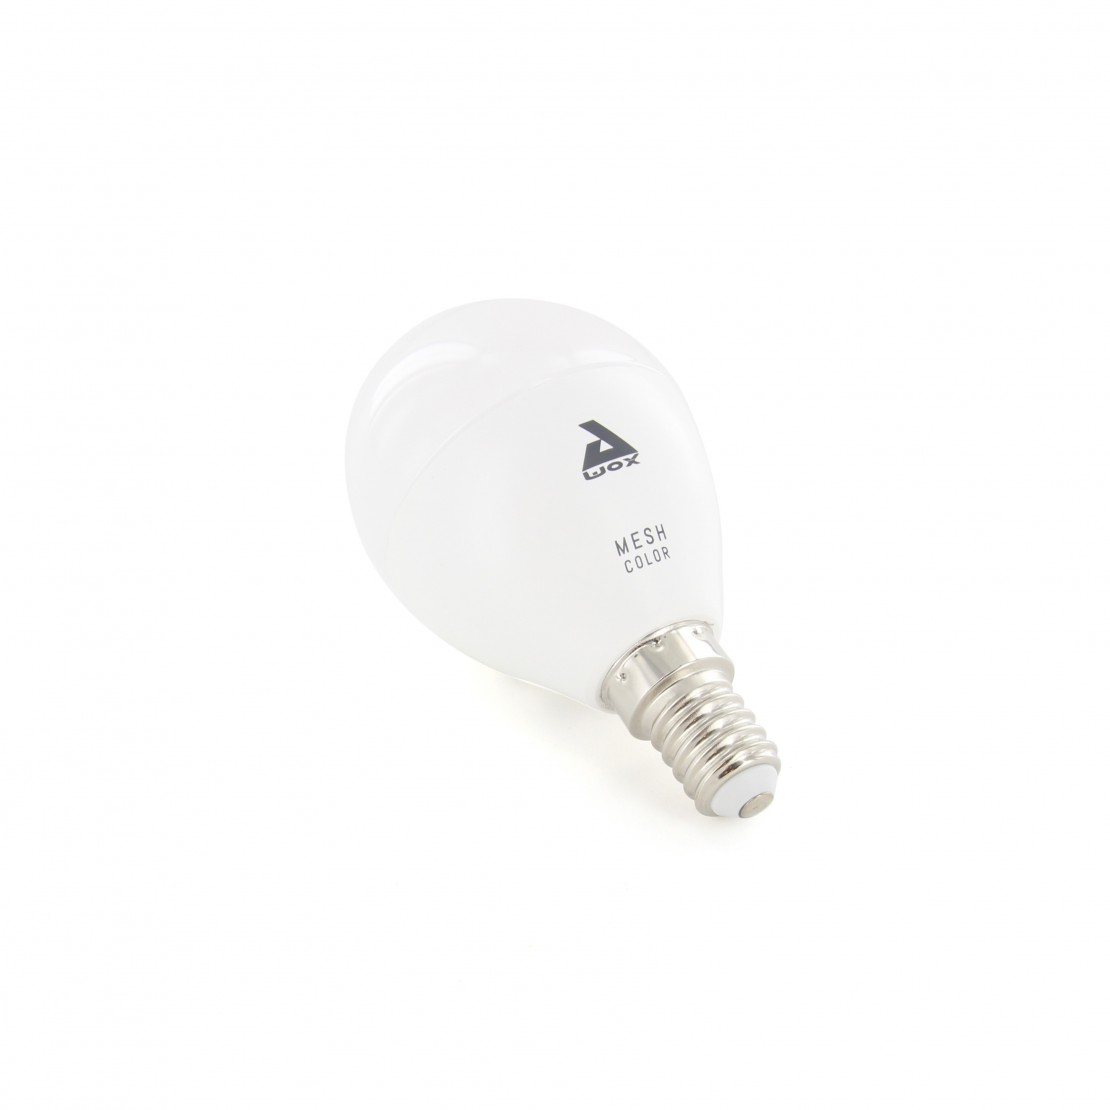 SmartLIGHT - ampoule E14 couleur Buetooth Mesh